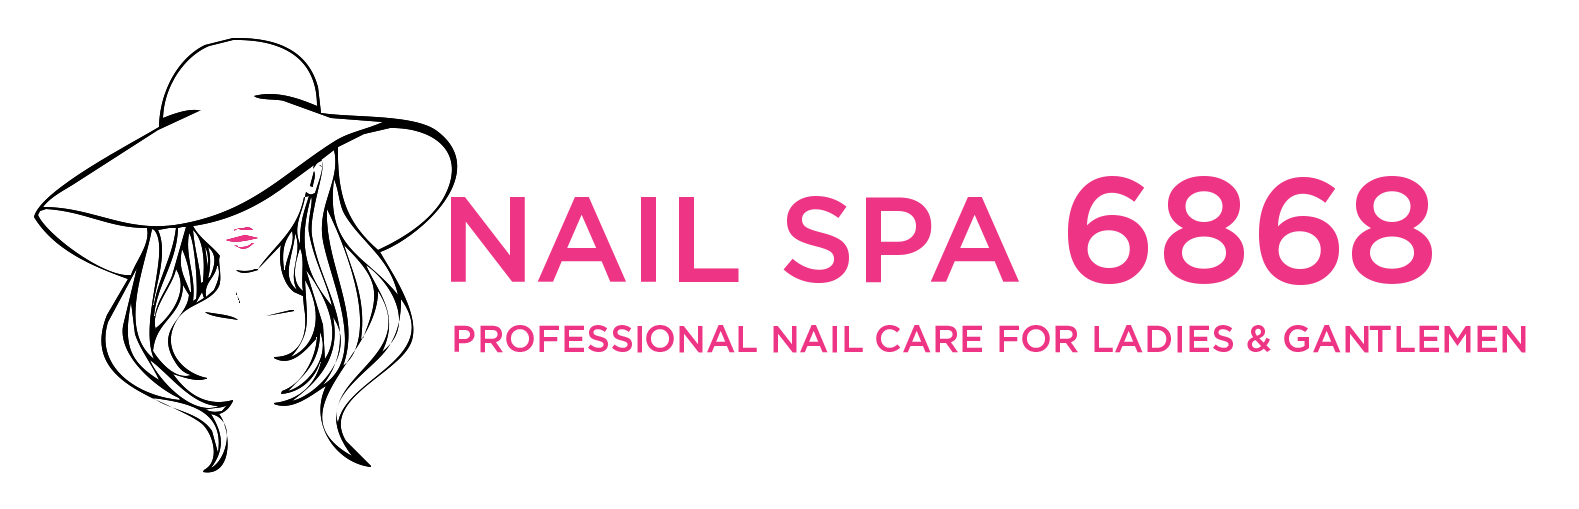 Nailspa6868 -  Which nail colors are popular the most? - nail salon near me Cambridge